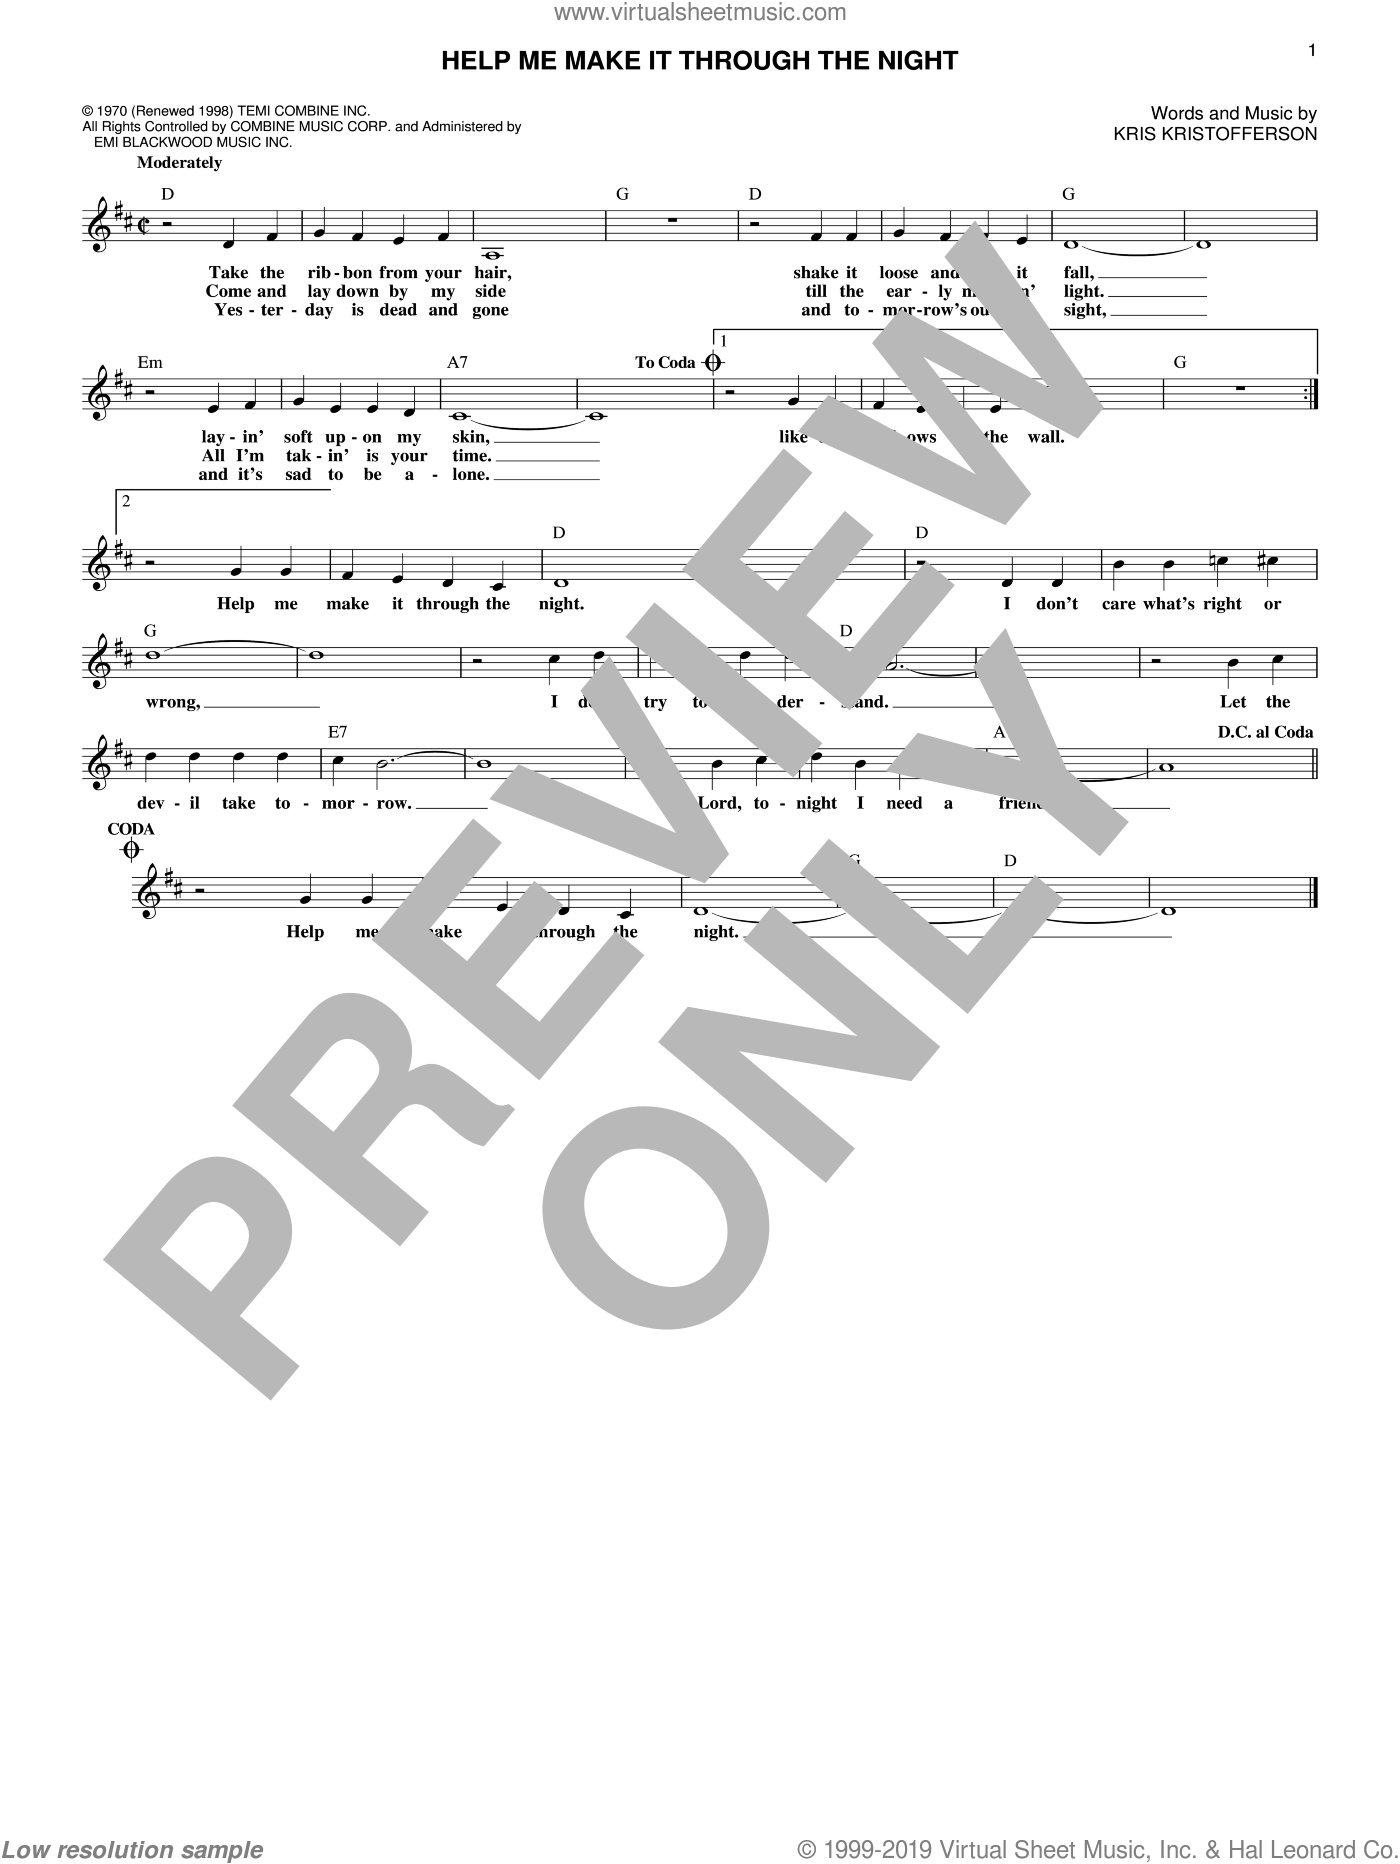 Help Me Make It Through The Night sheet music for voice and other instruments (fake book) by Kris Kristofferson, Elvis Presley, Sammi Smith and Willie Nelson, intermediate. Score Image Preview.